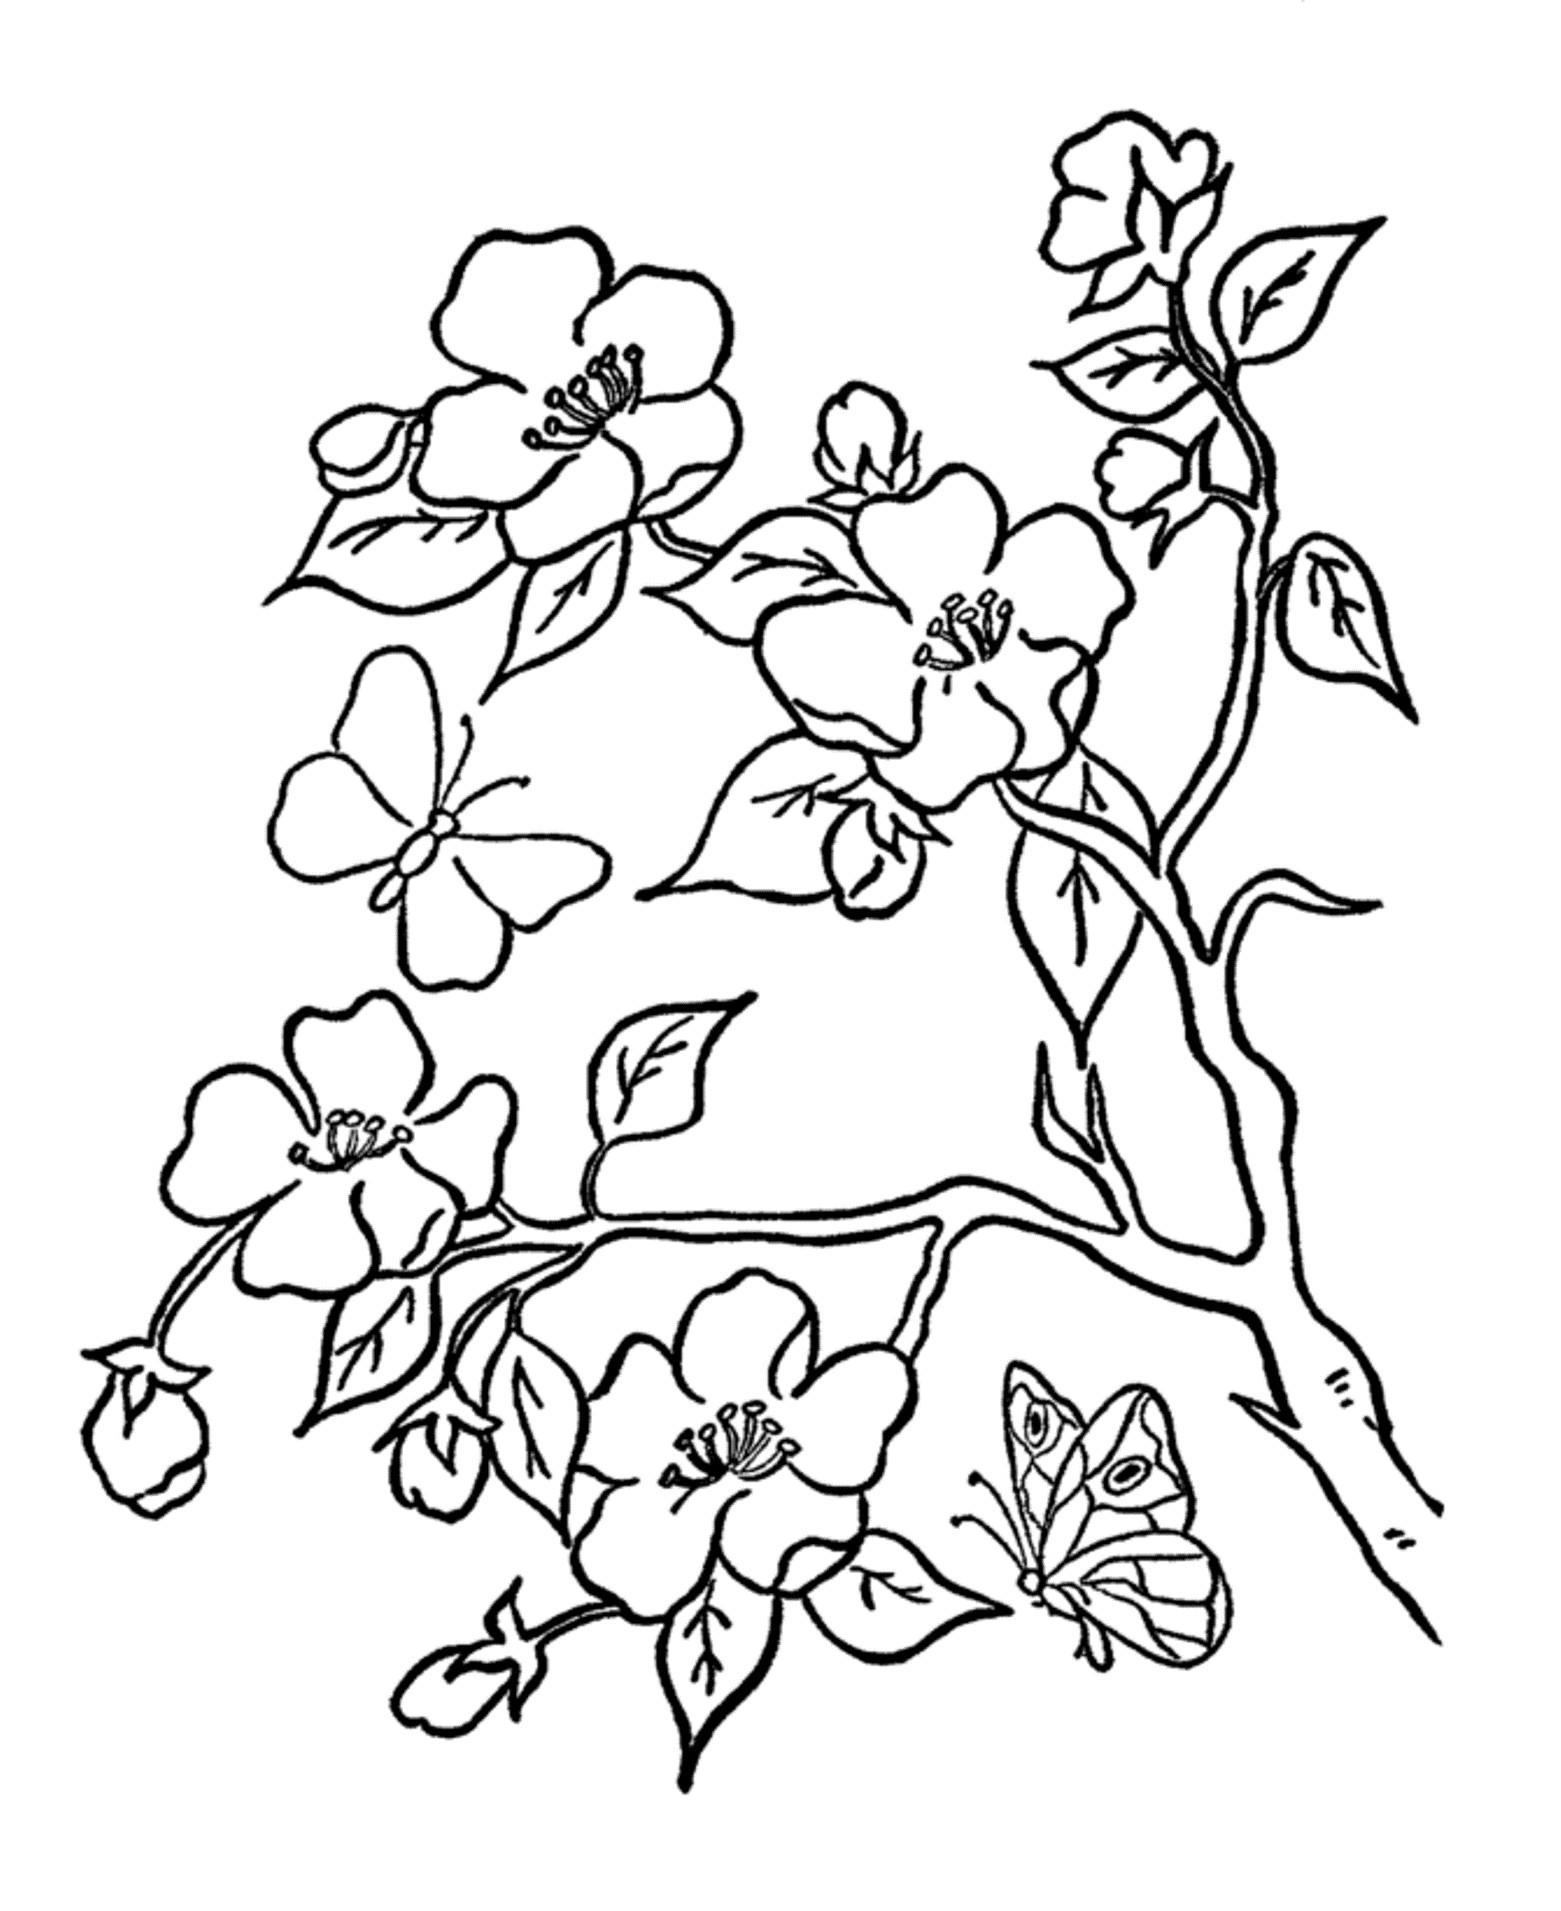 Flower Vegetation Coloring Pages Adults Adult